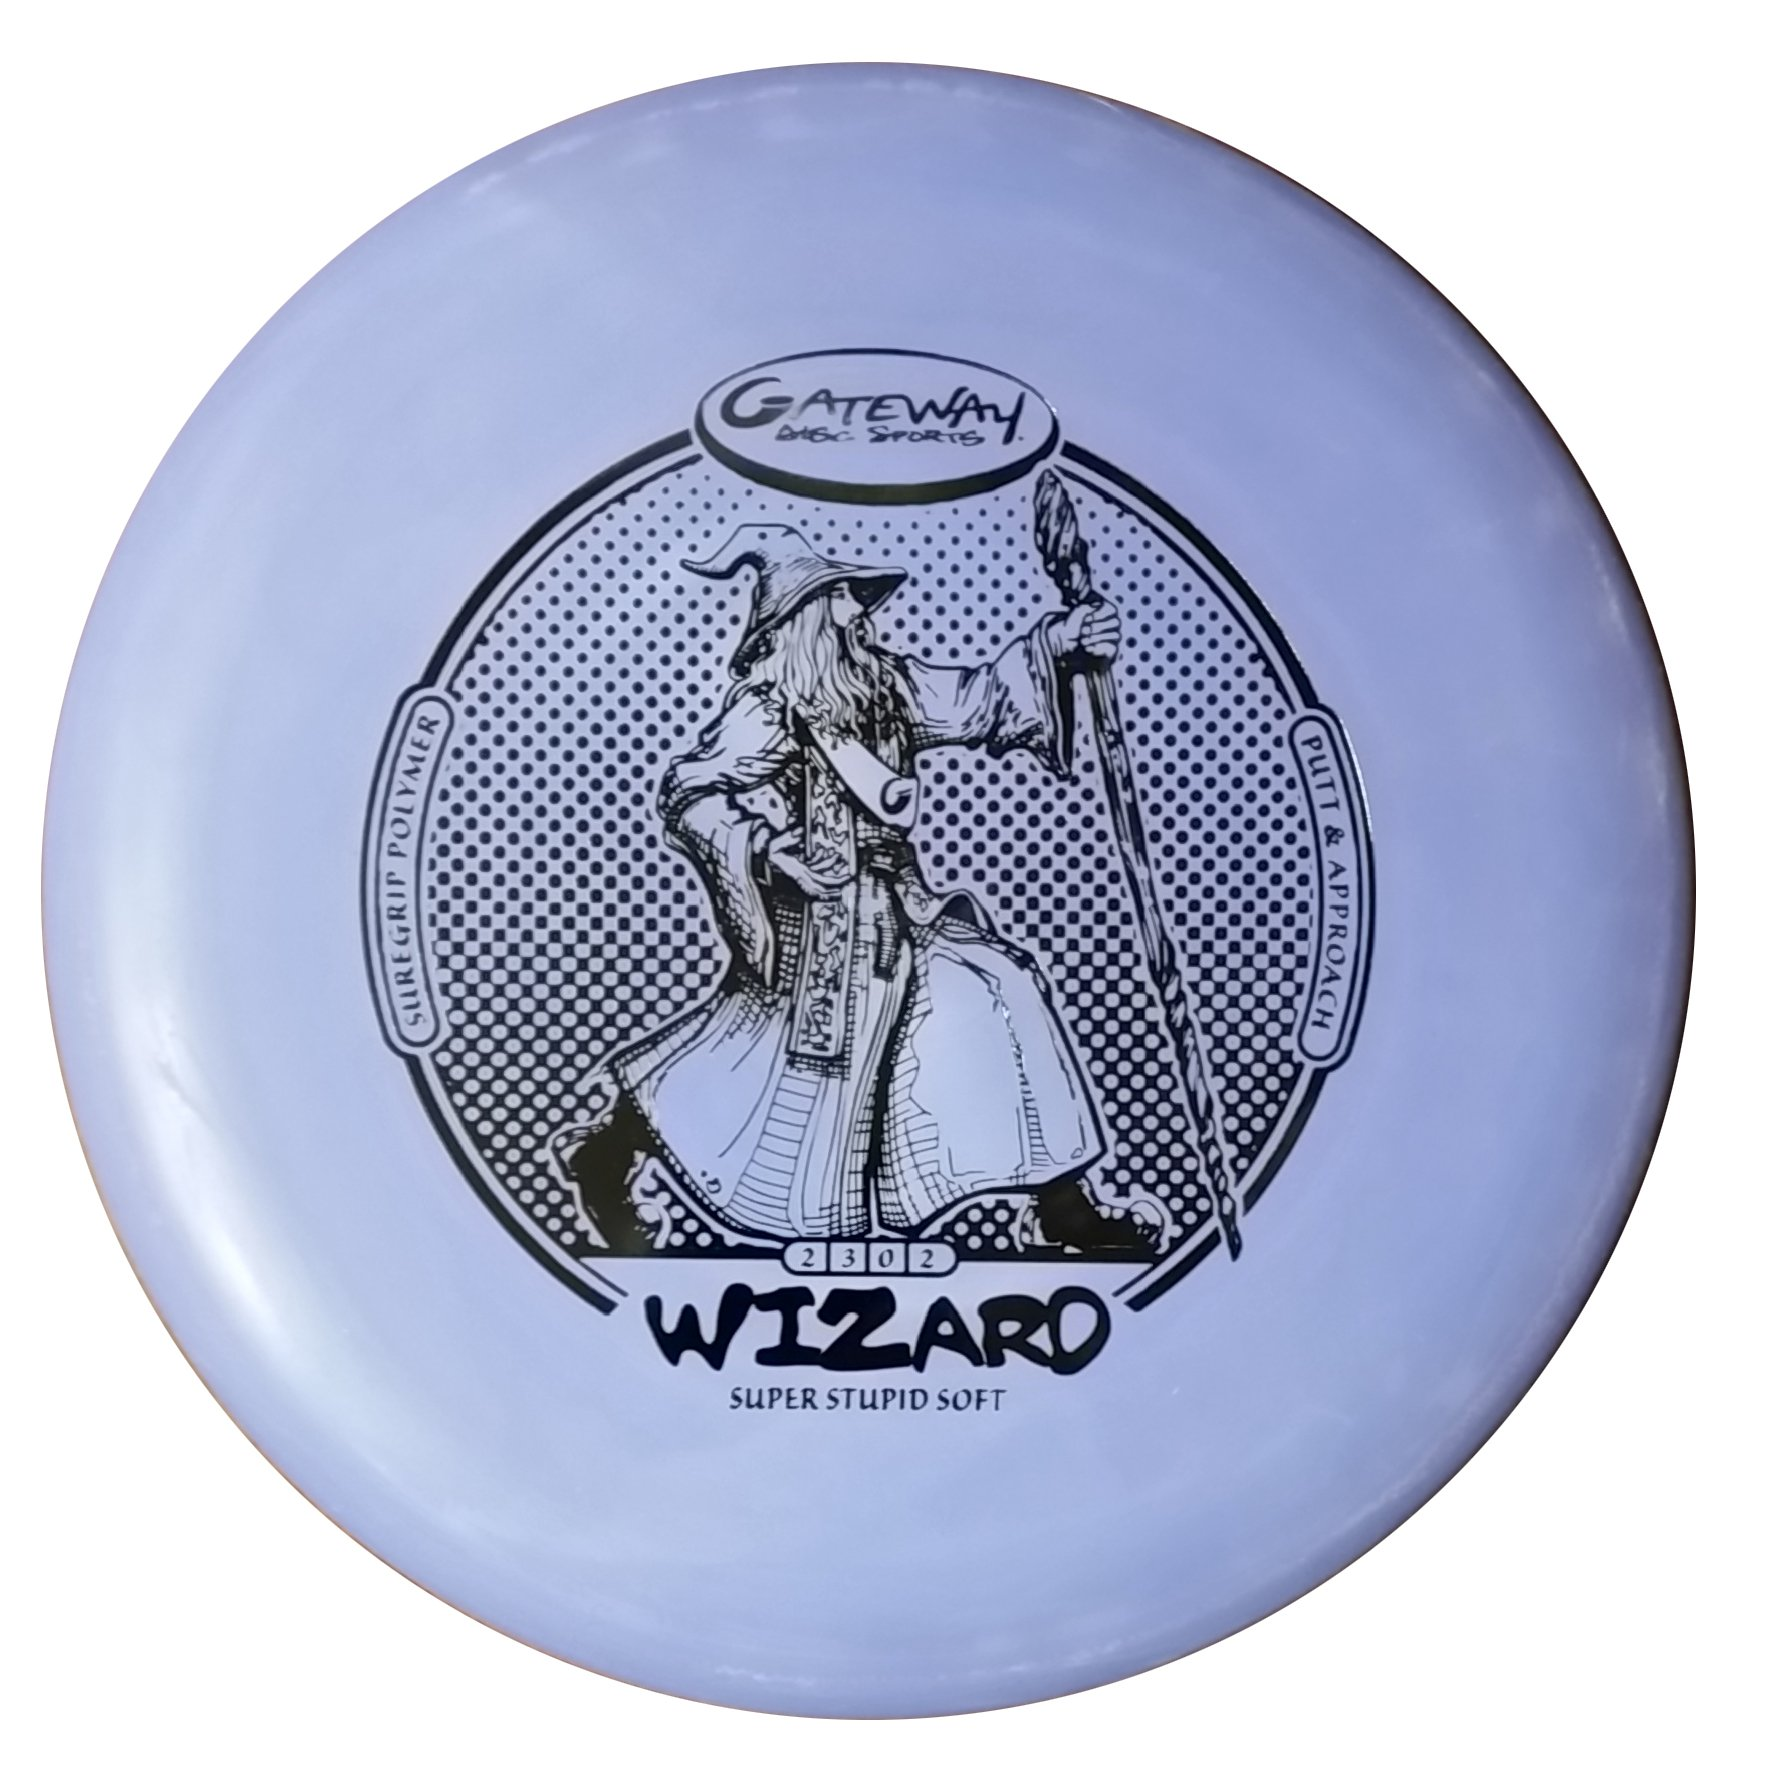 Gateway Disc Sports Sure Grip S Super Stupid Soft Wizard Putter Golf Disc [Colors may vary] - 160-169g